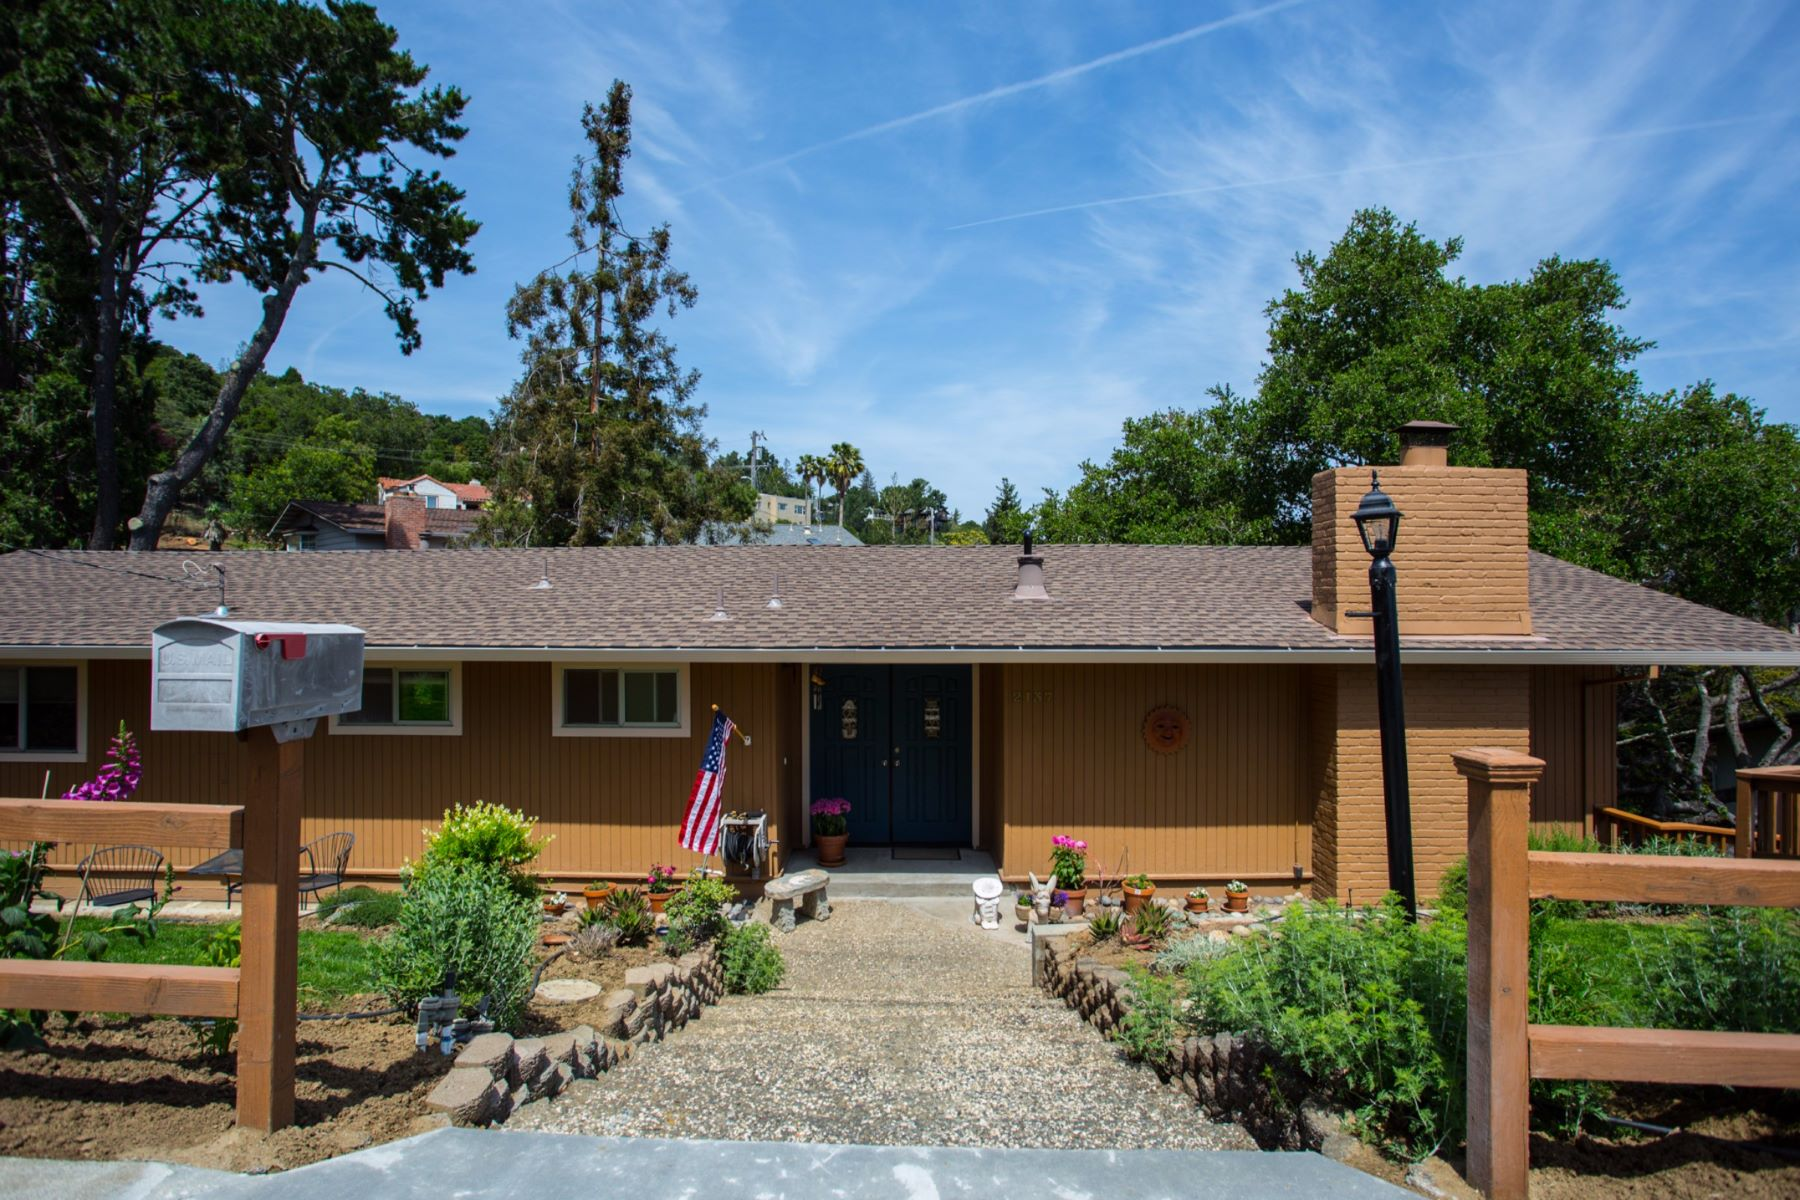 Single Family Home for Sale at 2137 Pullman Avenue Belmont, California 94002 United States